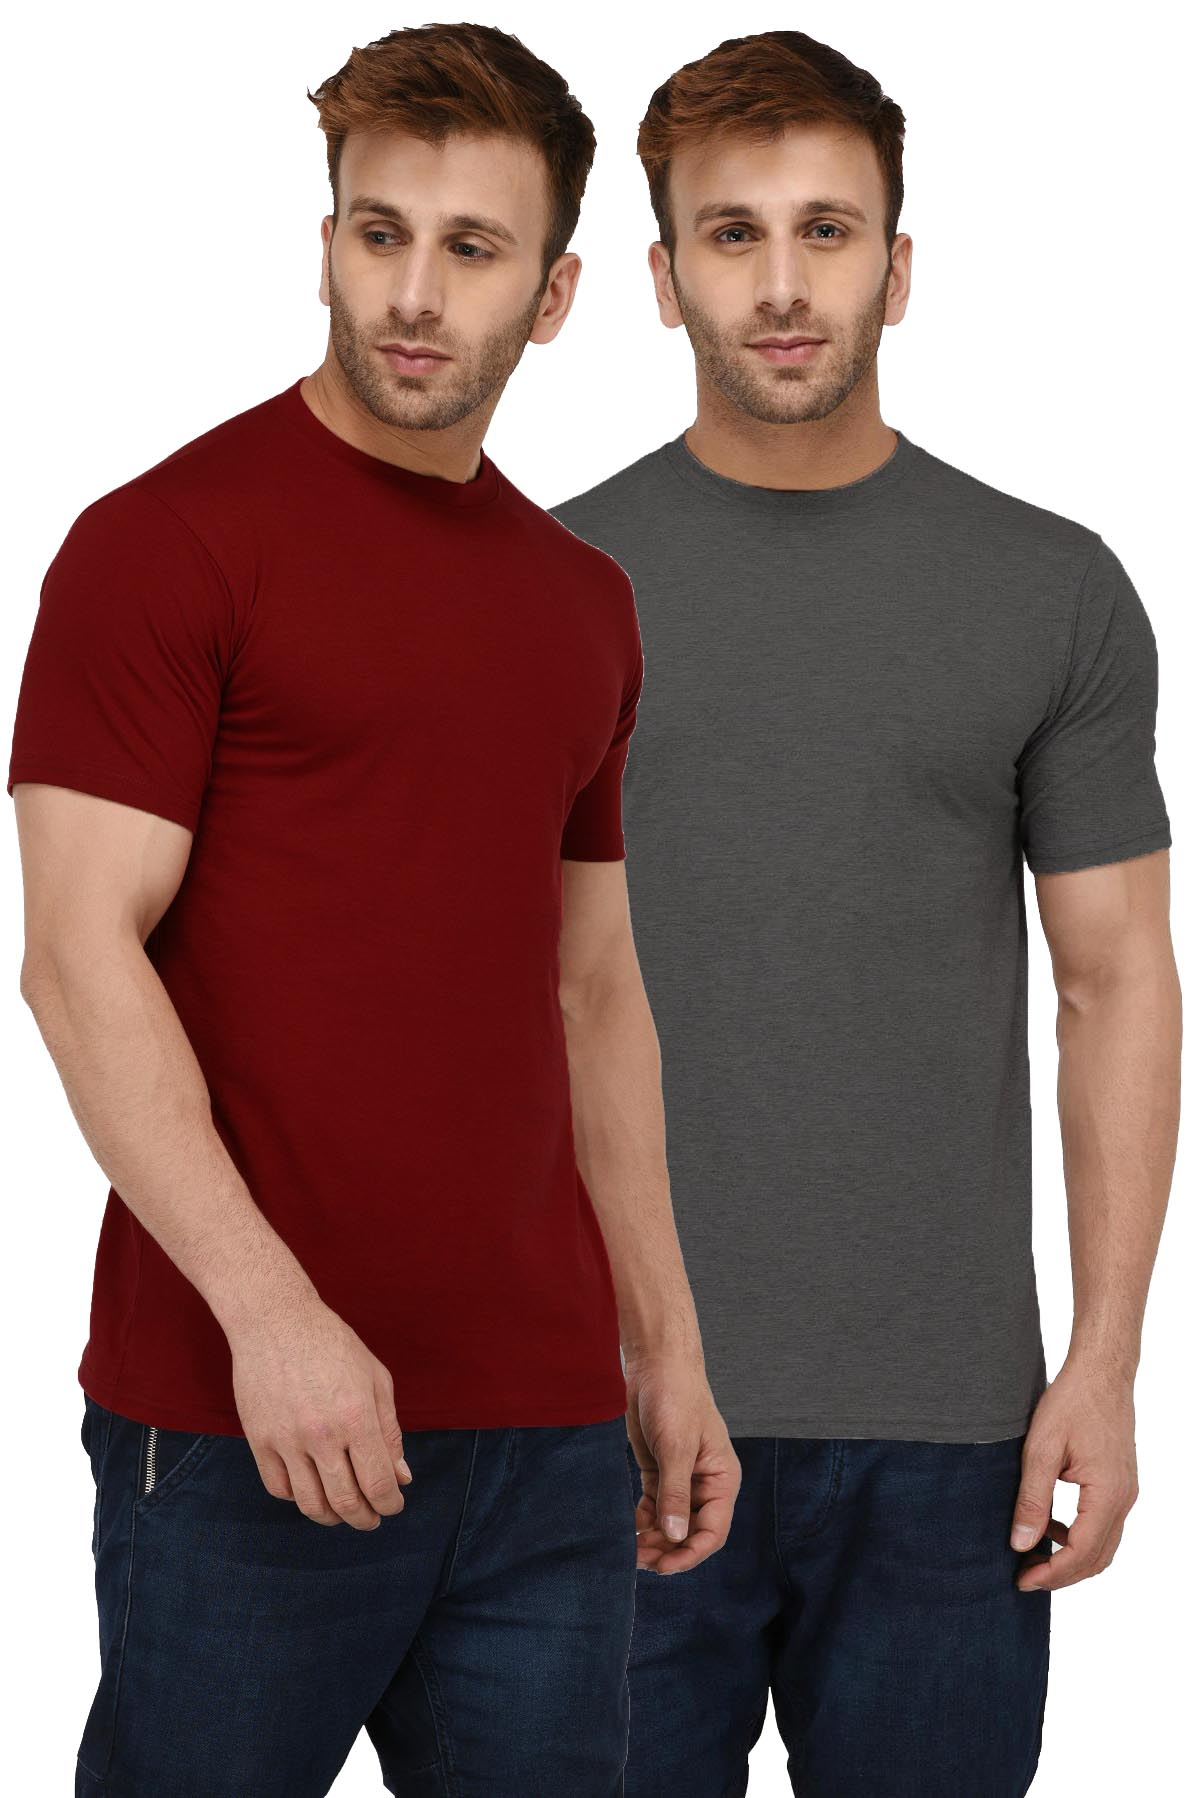 London Hills Men's Pure Cotton Solid Half Sleeve Round Neck Regular Fit Rust Red And Dark Grey T-Shirt (Pack of 2) (LH_T_R_HF_462_453)